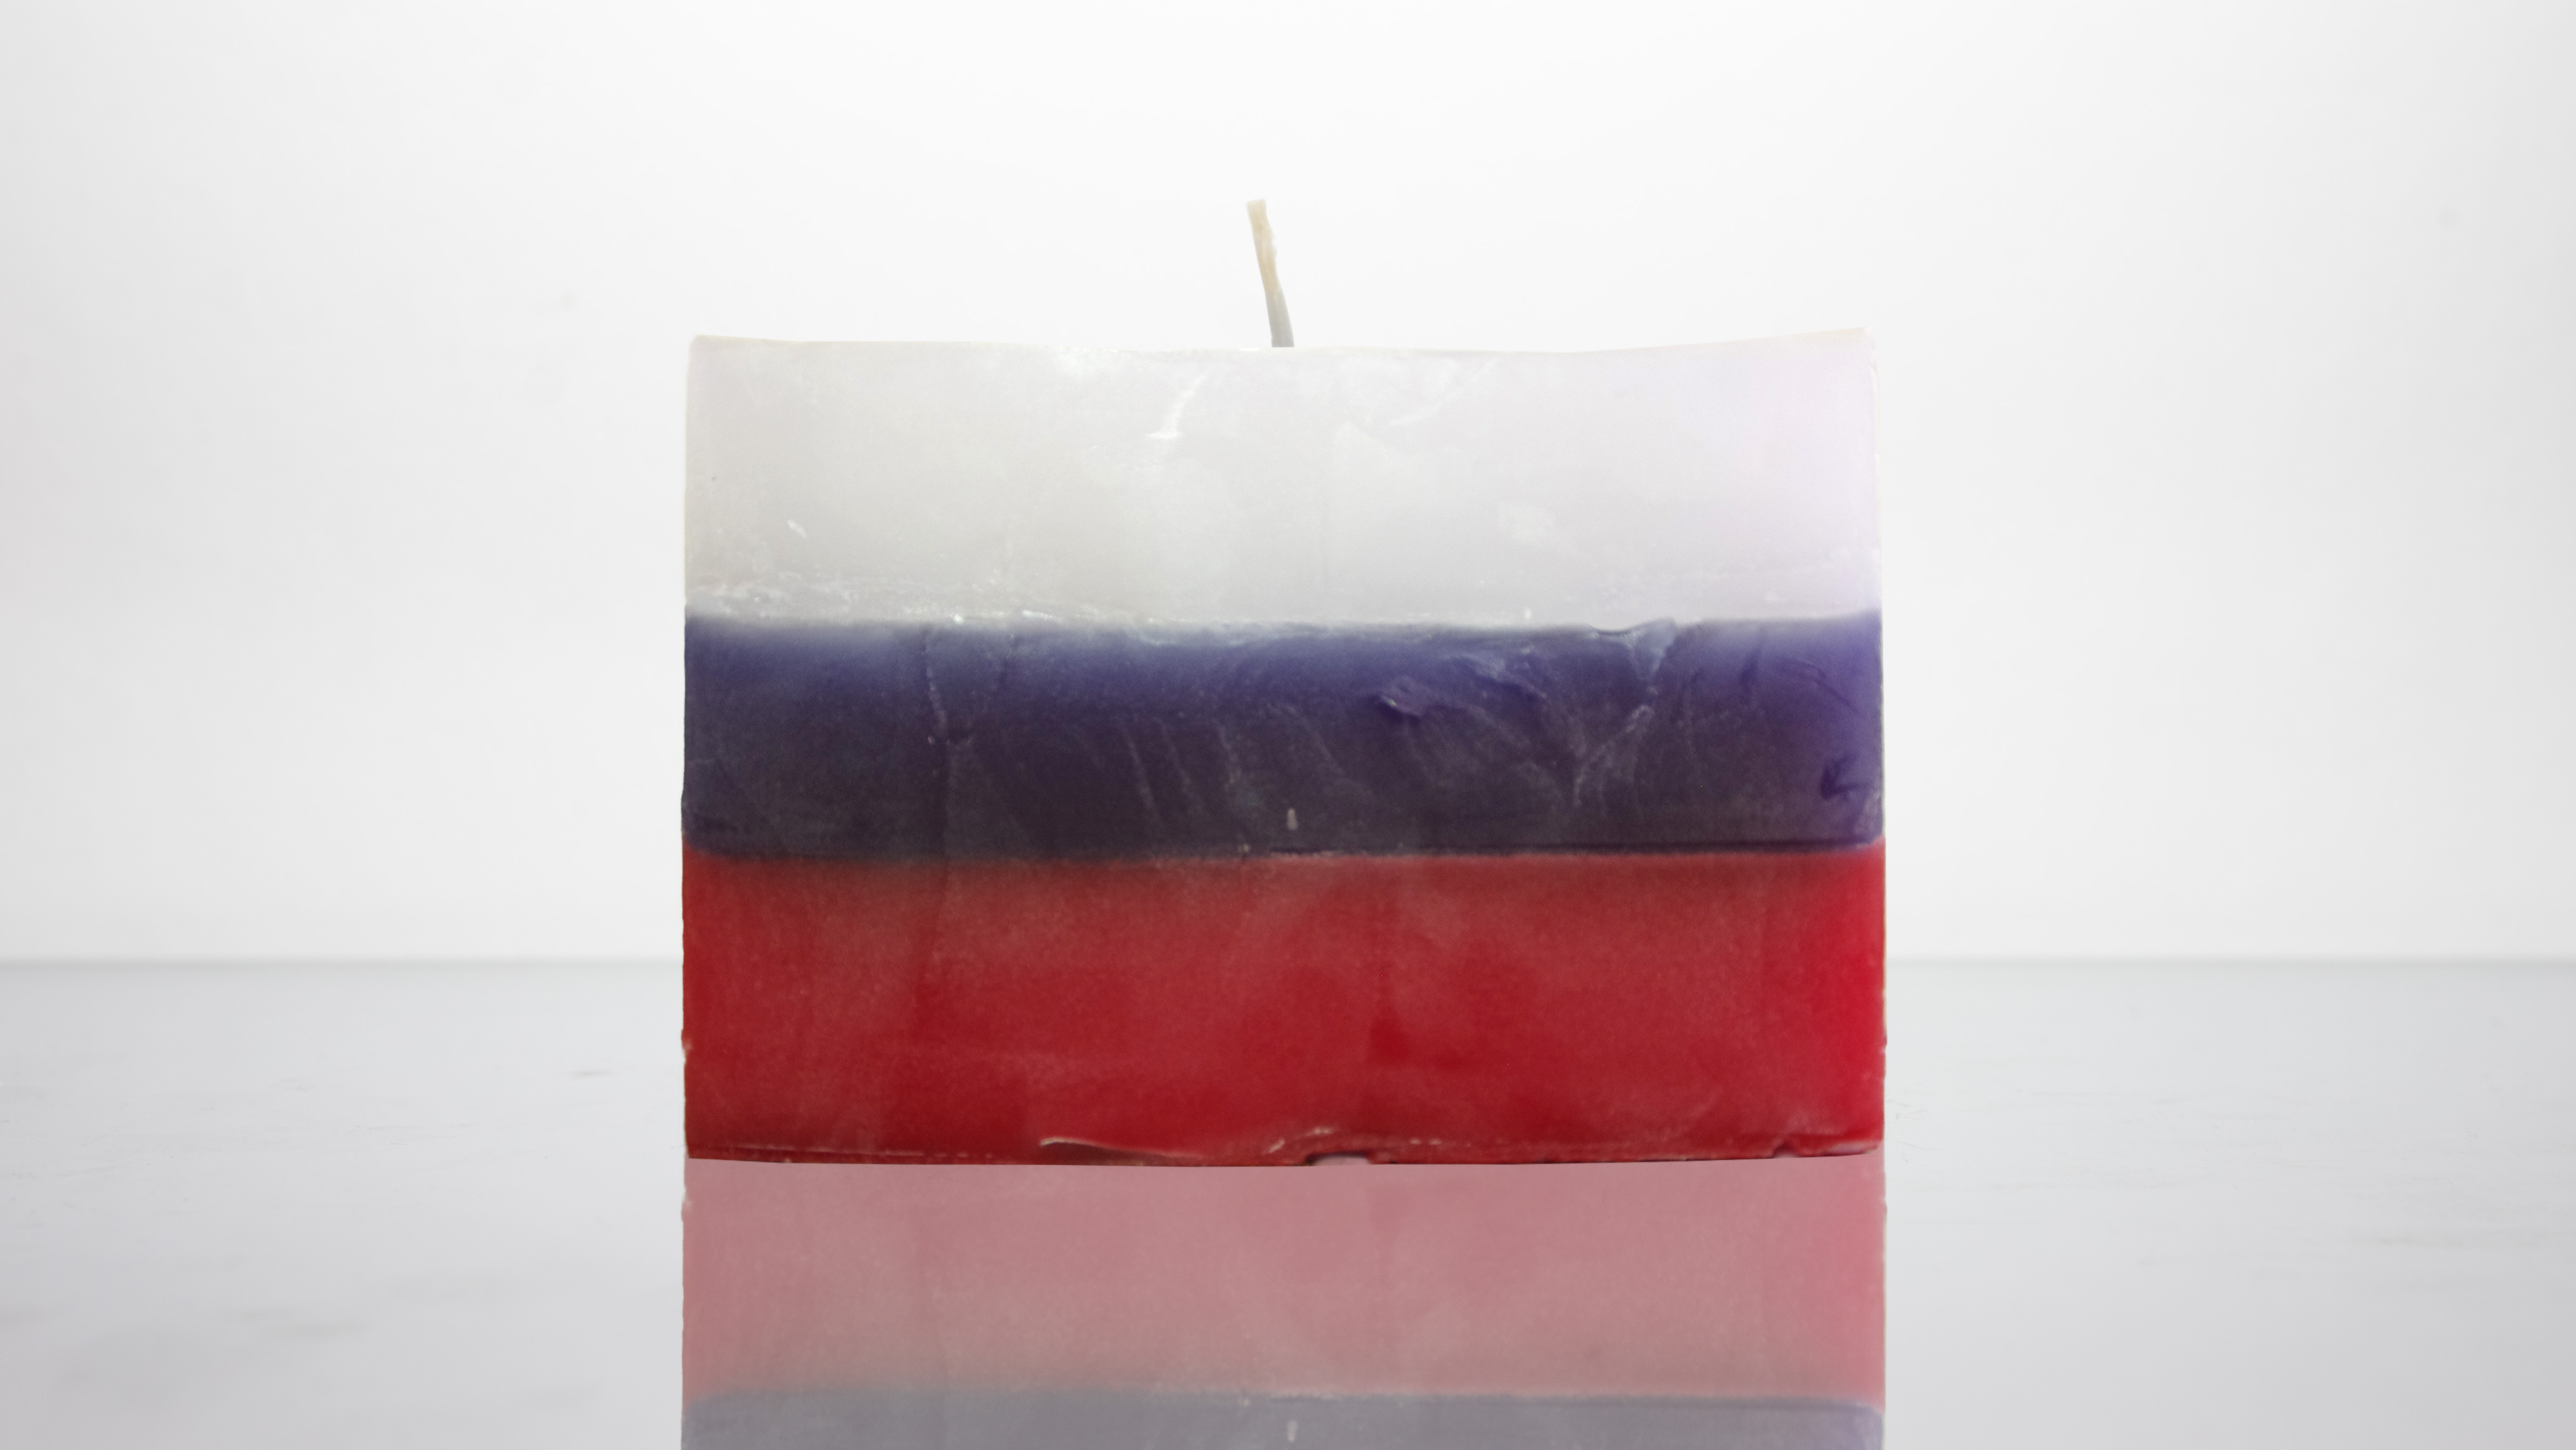 burn-a-flag: Russia